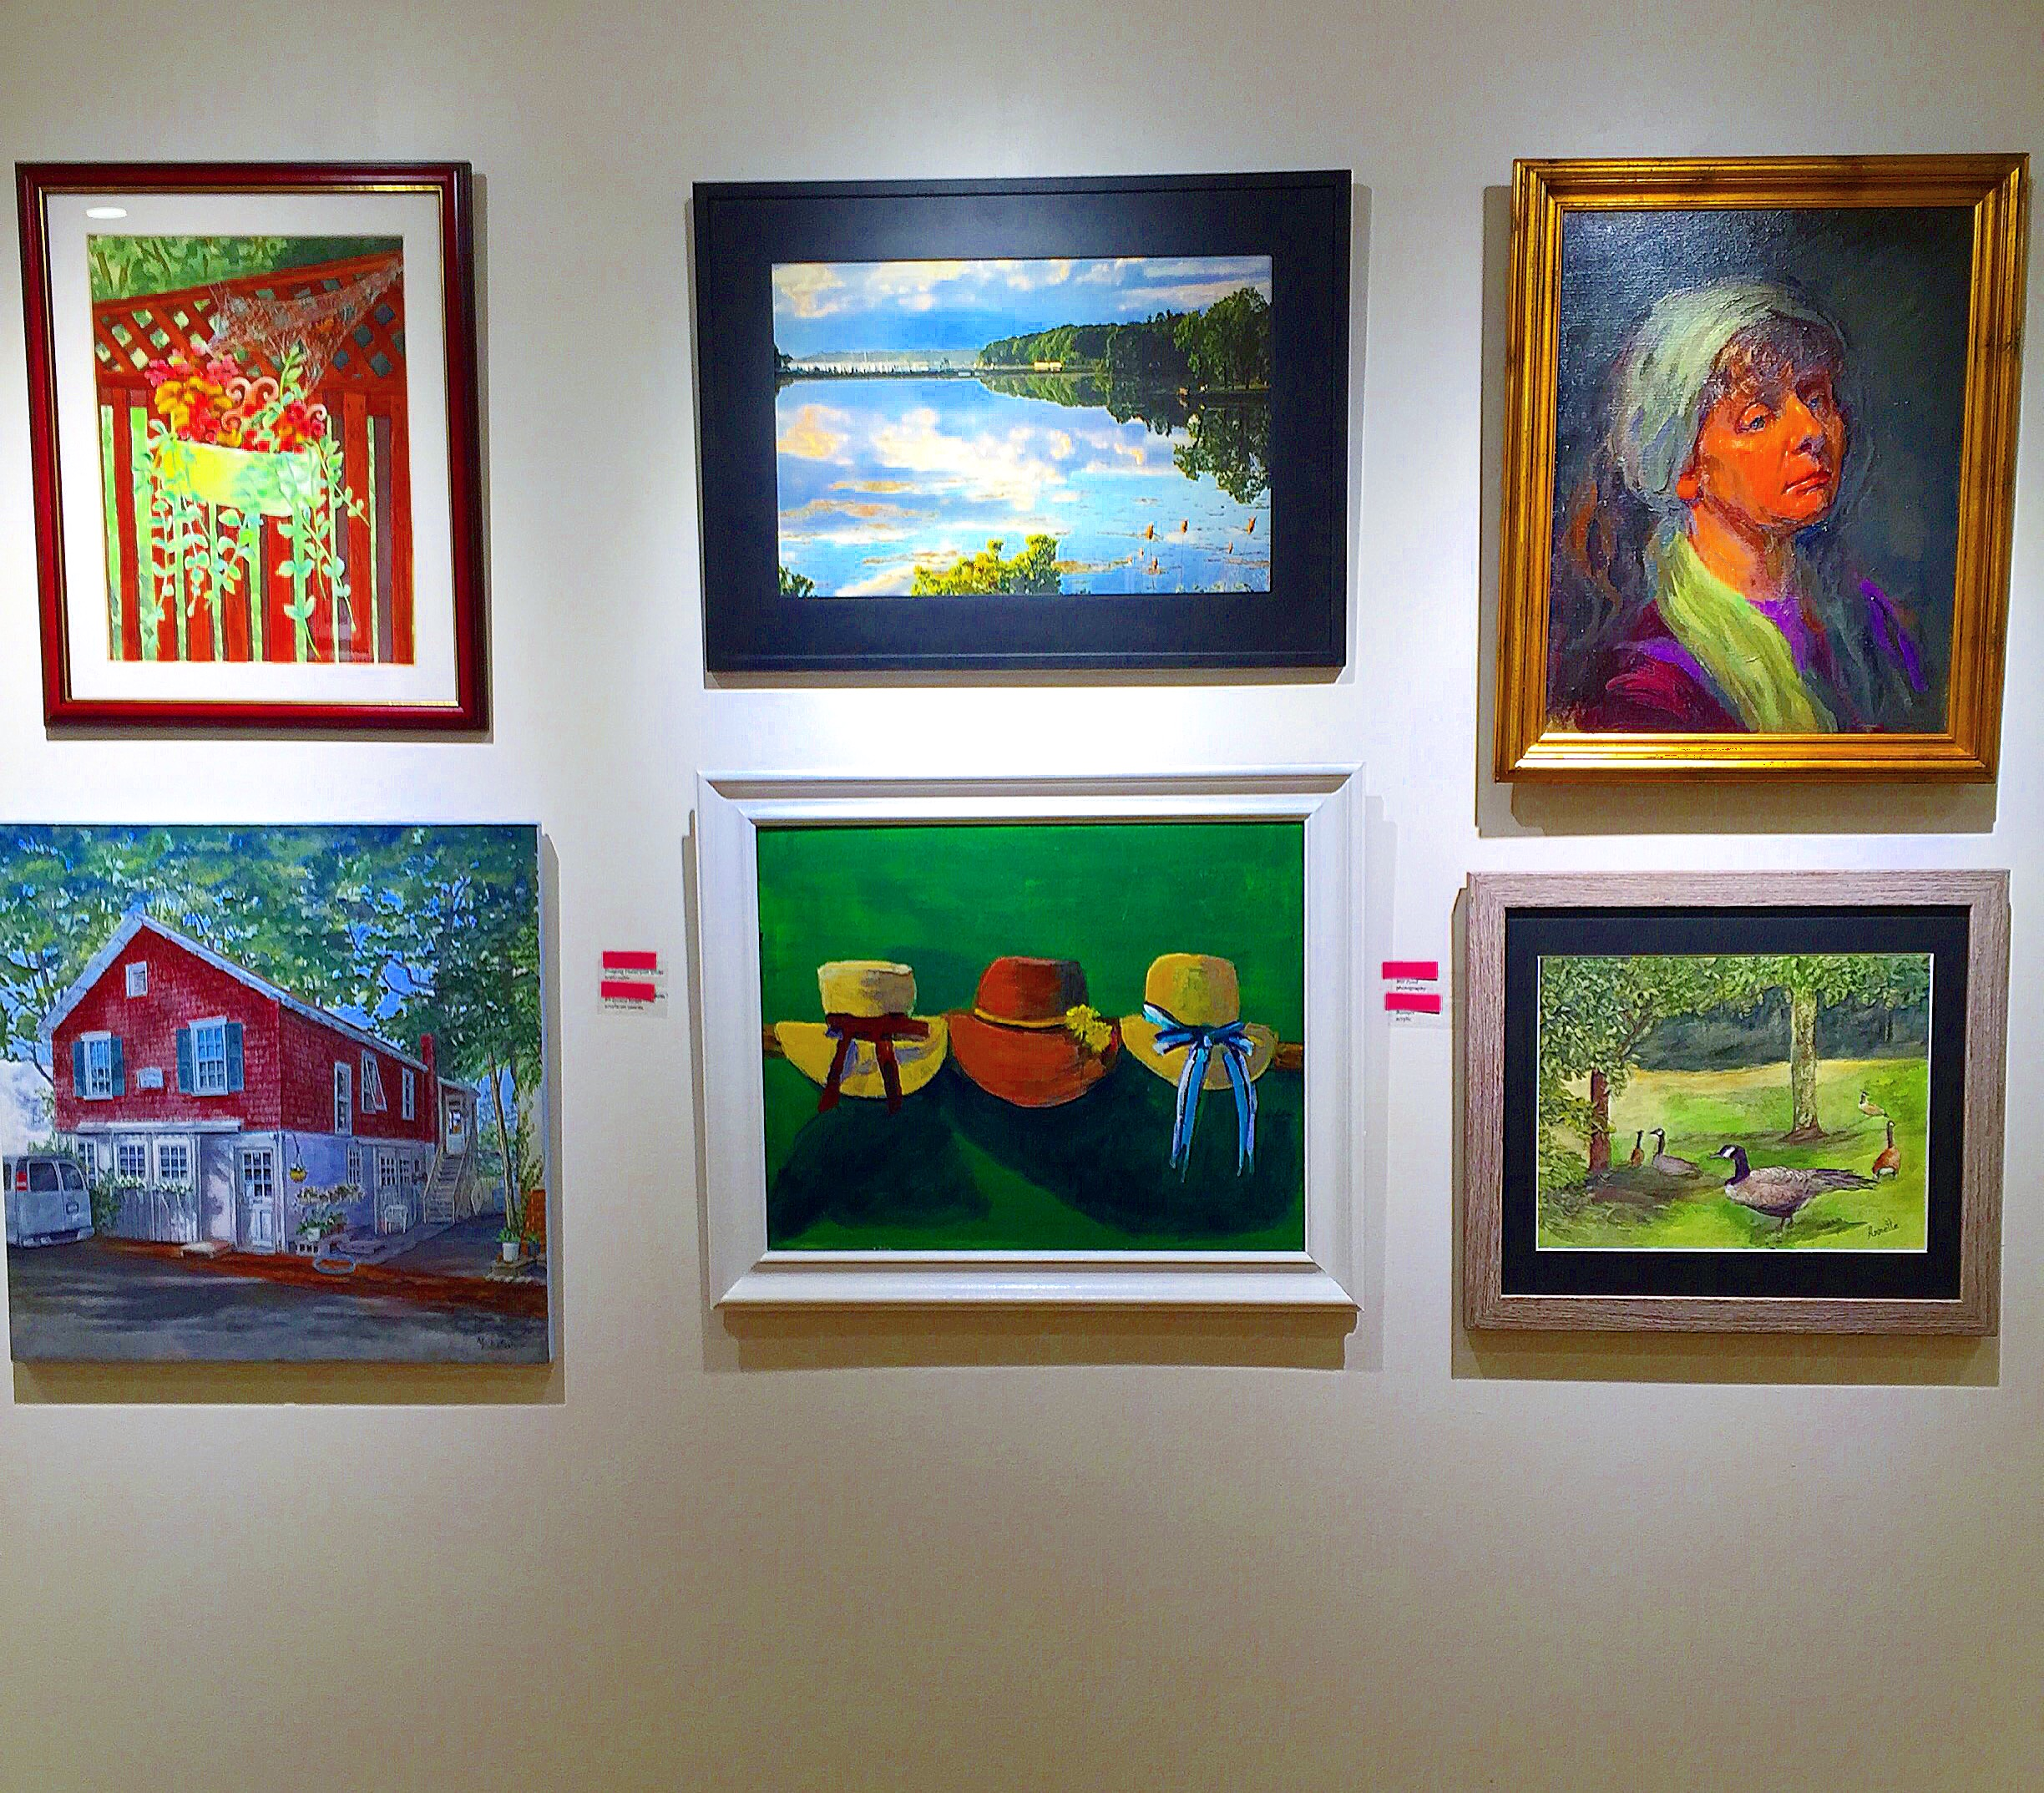 Art Gallery at the Art League of Long Island